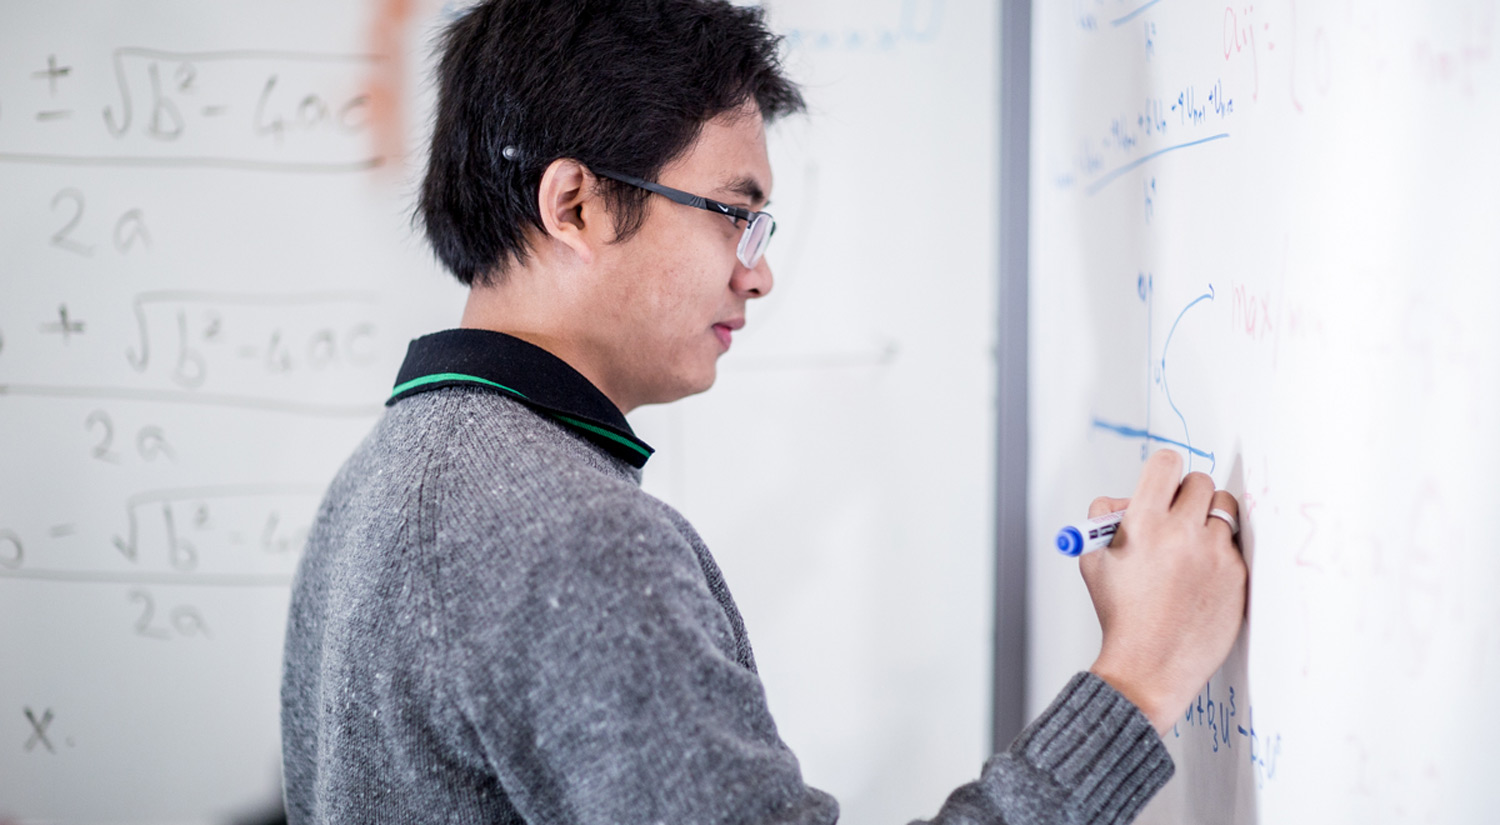 Image of a student working on a white board wall